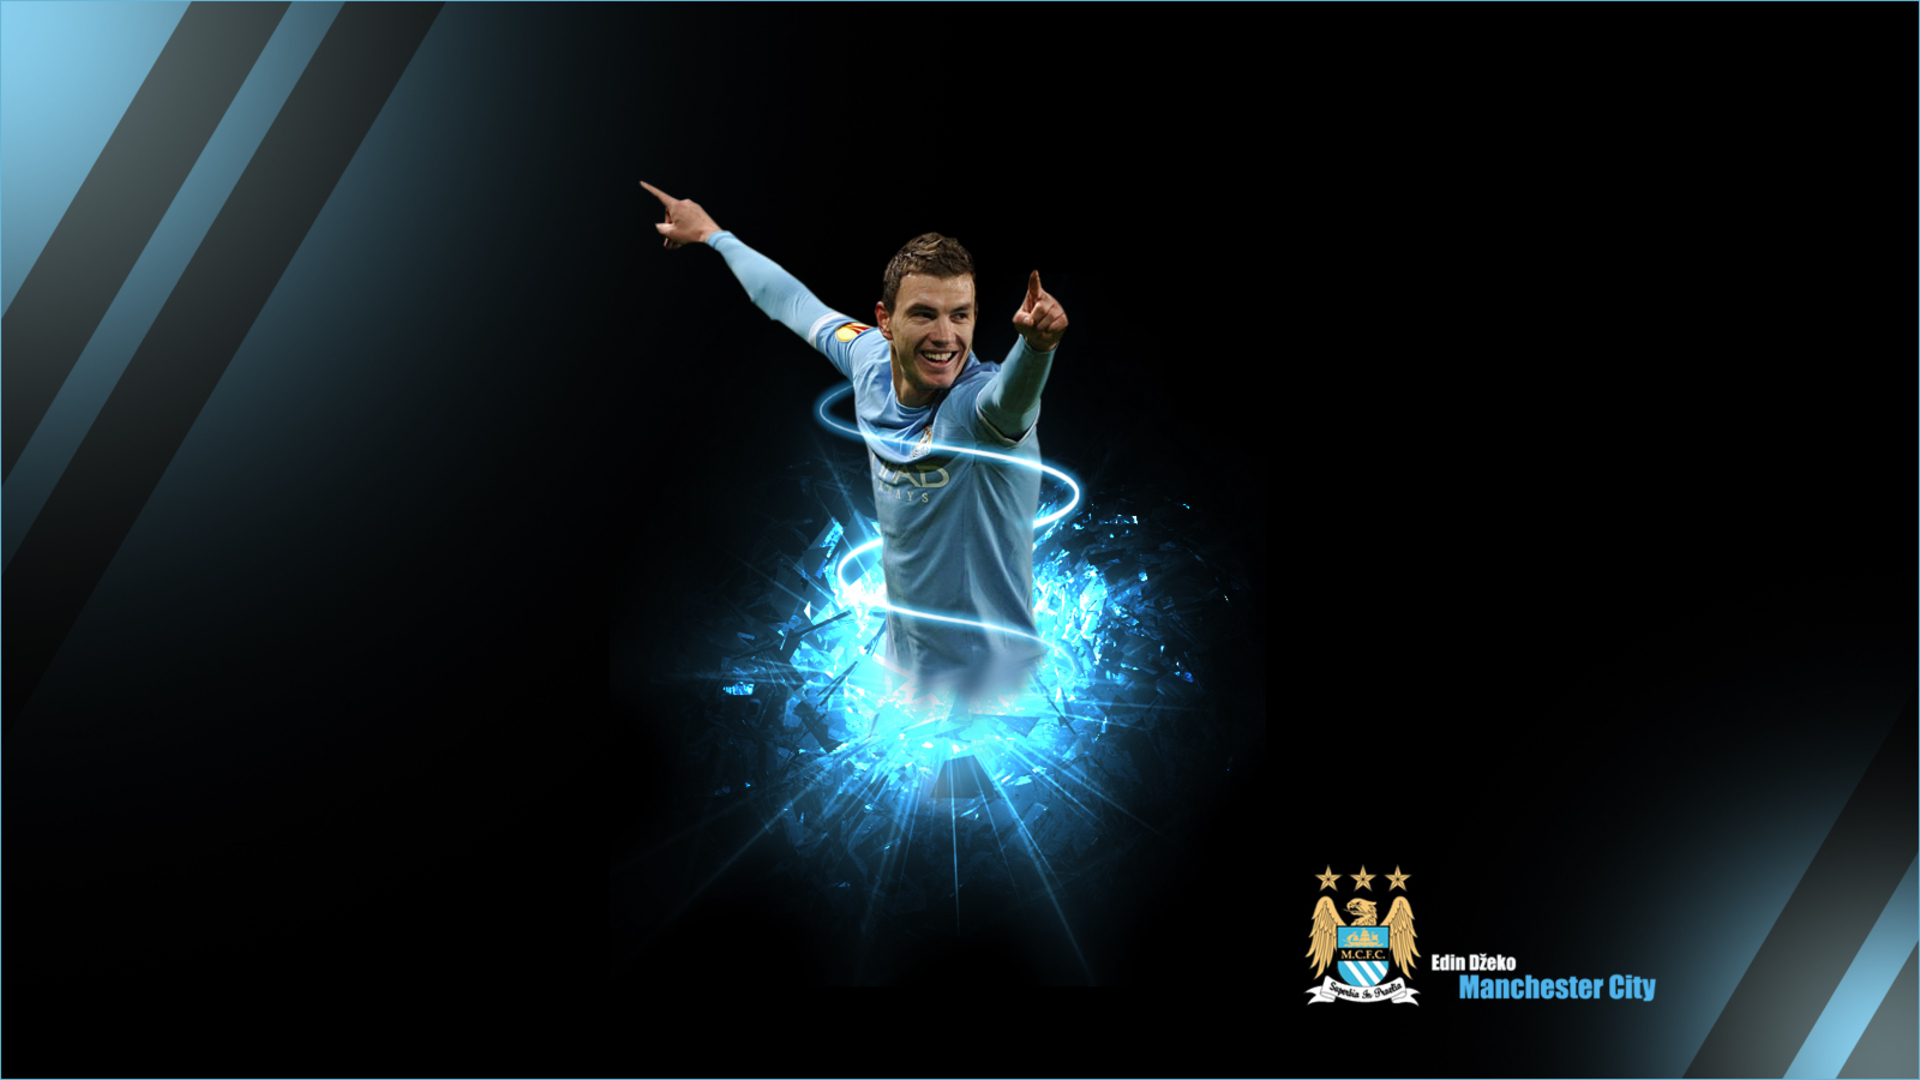 Football Player of Manchester City wallpapers and images 1920x1080